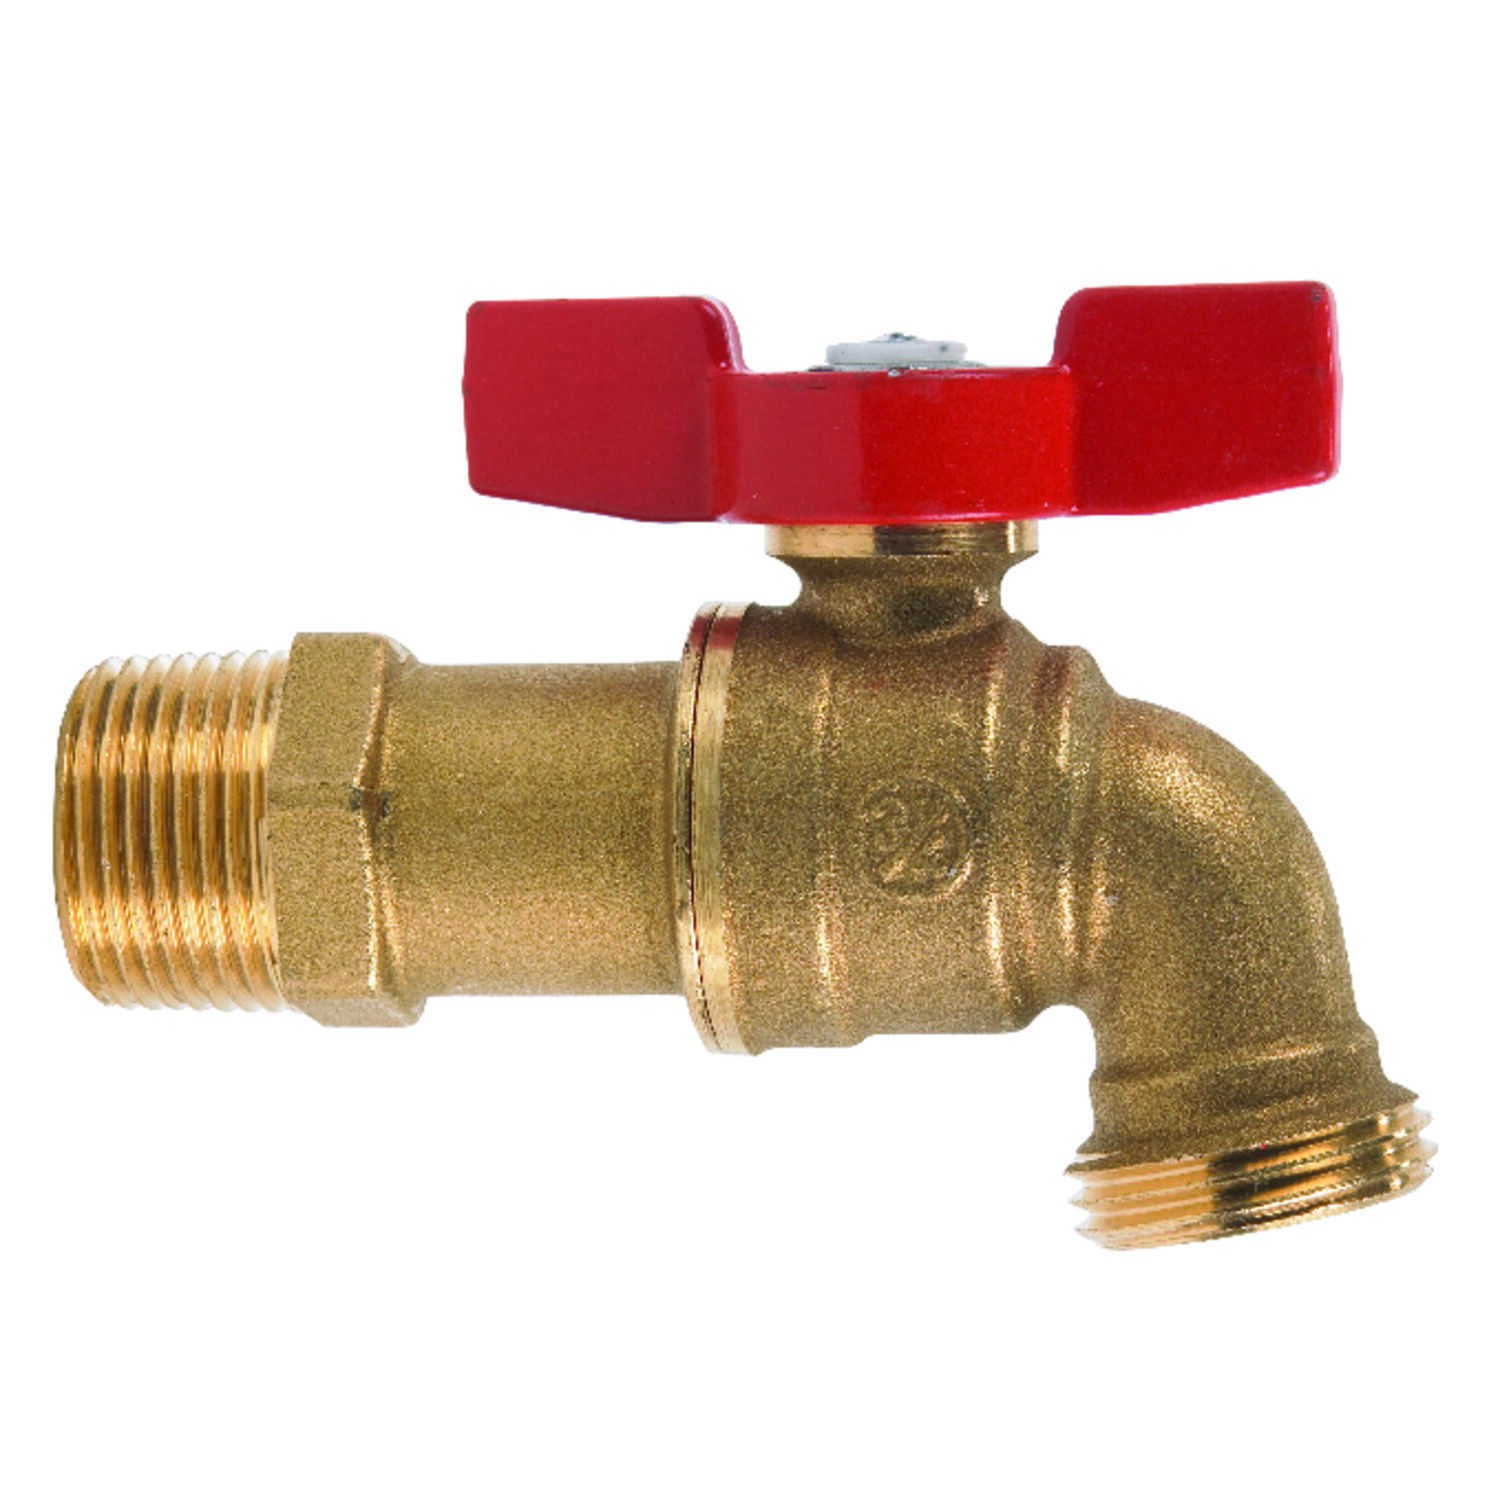 B & K  Mueller  3/4 in. MIP  Dia. x 3/4 in. Dia. Hose  Brass  4 in. Ball Valve Hose Bibb